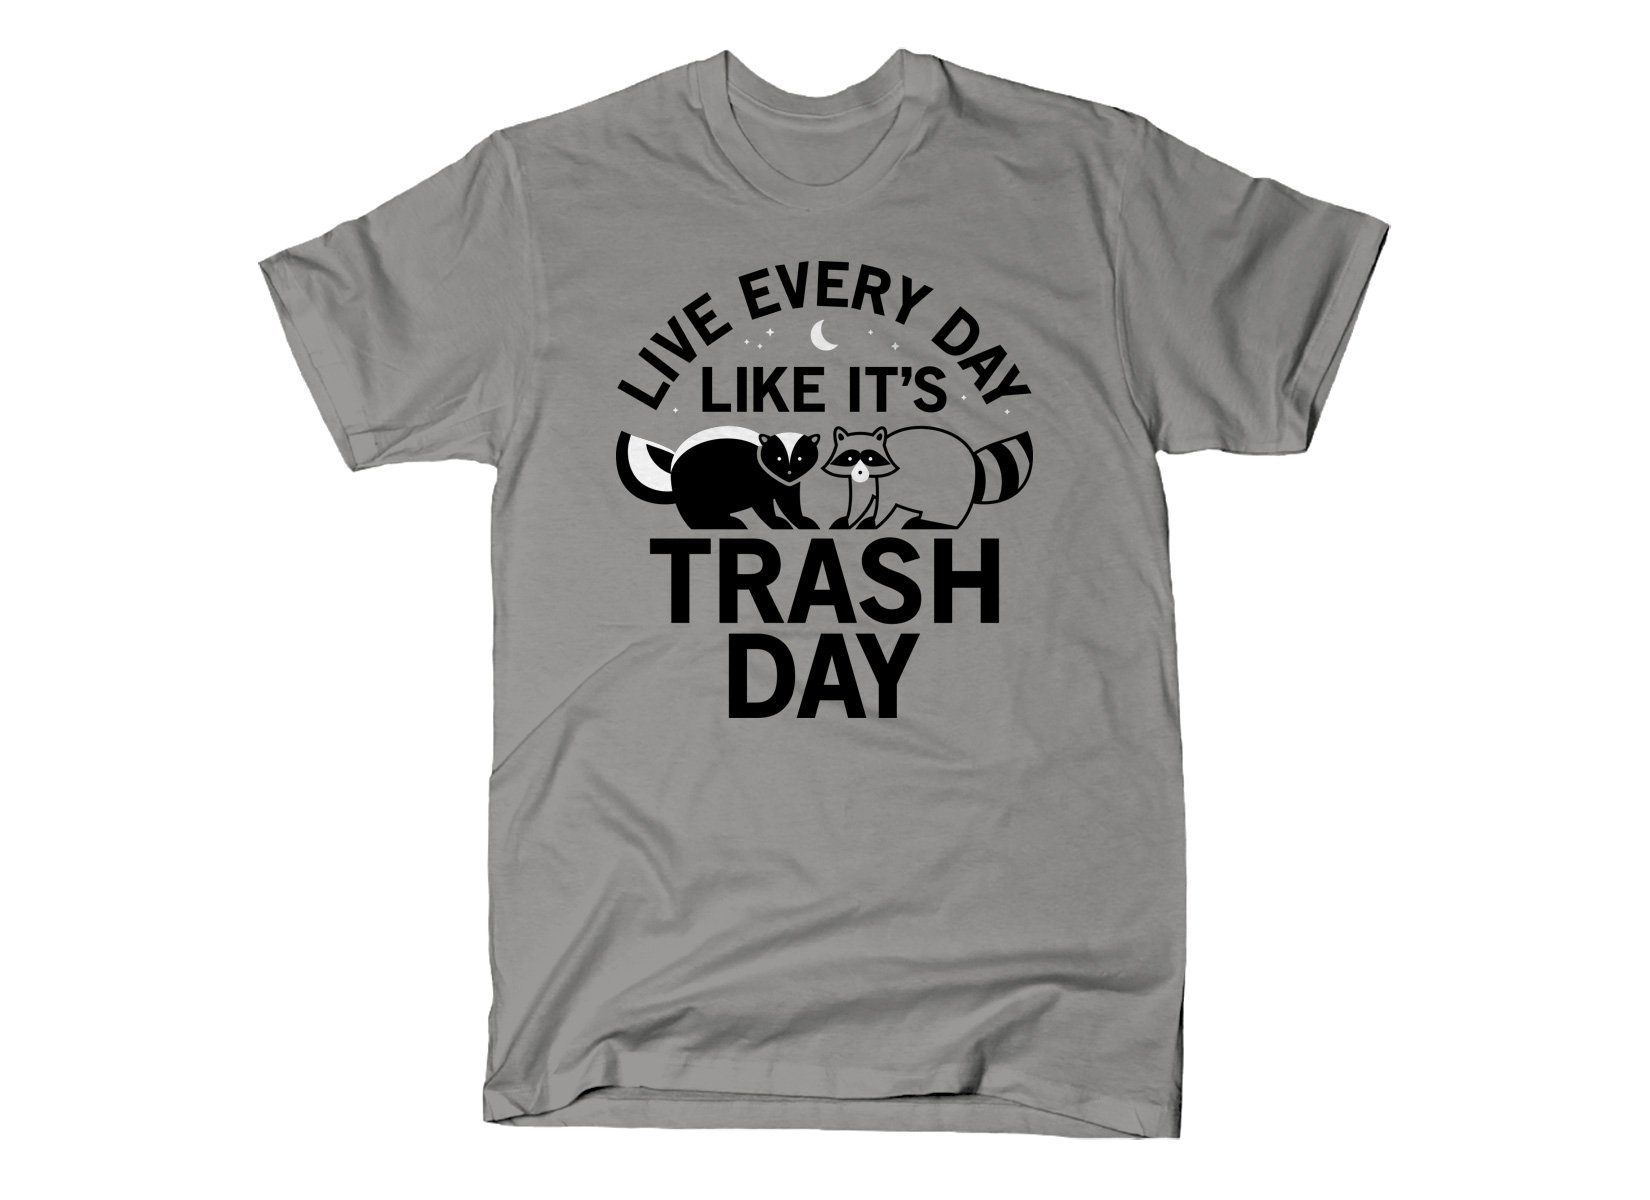 Live Every Day Like It's Trash Day on Mens T-Shirt